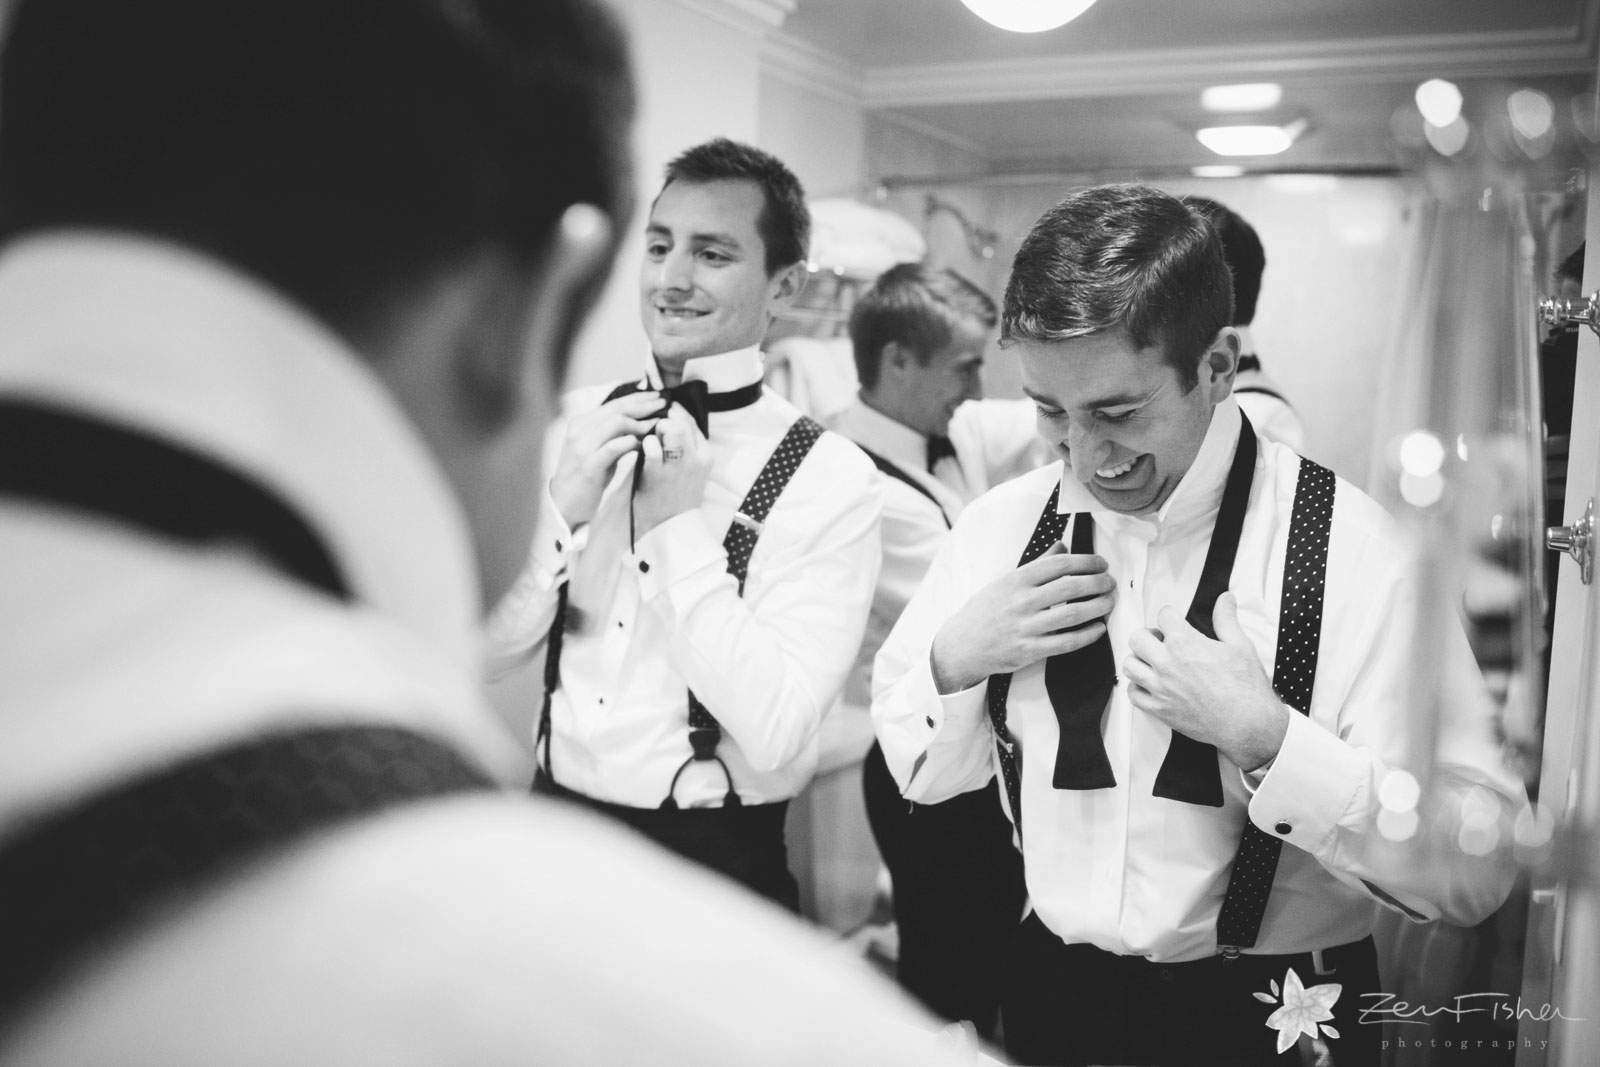 Groom and groomsmen getting ready tying their bowties in the mirror at the hotel room.